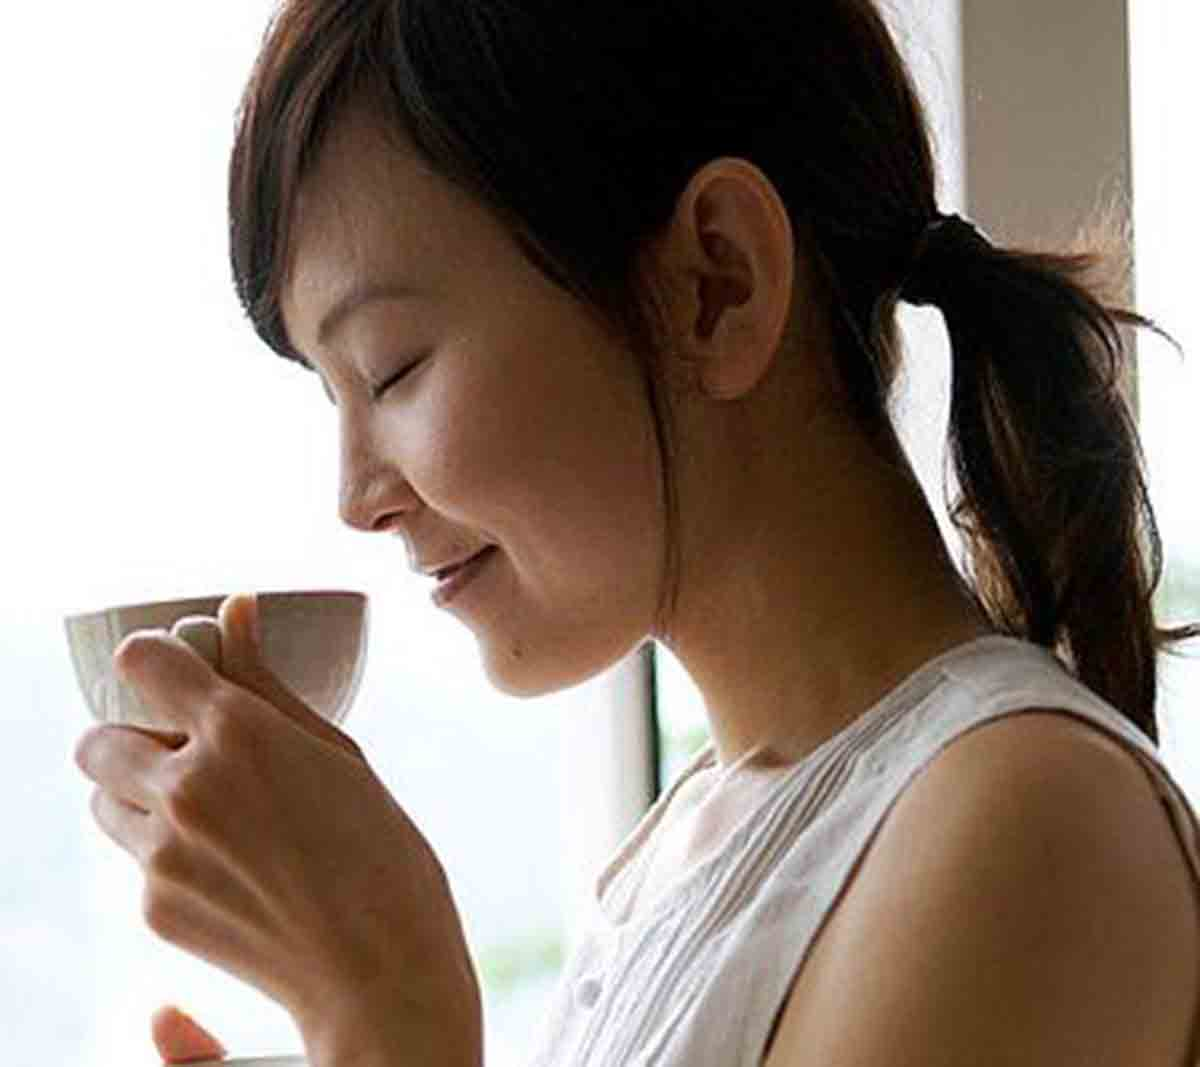 Bootea, Chinese woman drinking tea